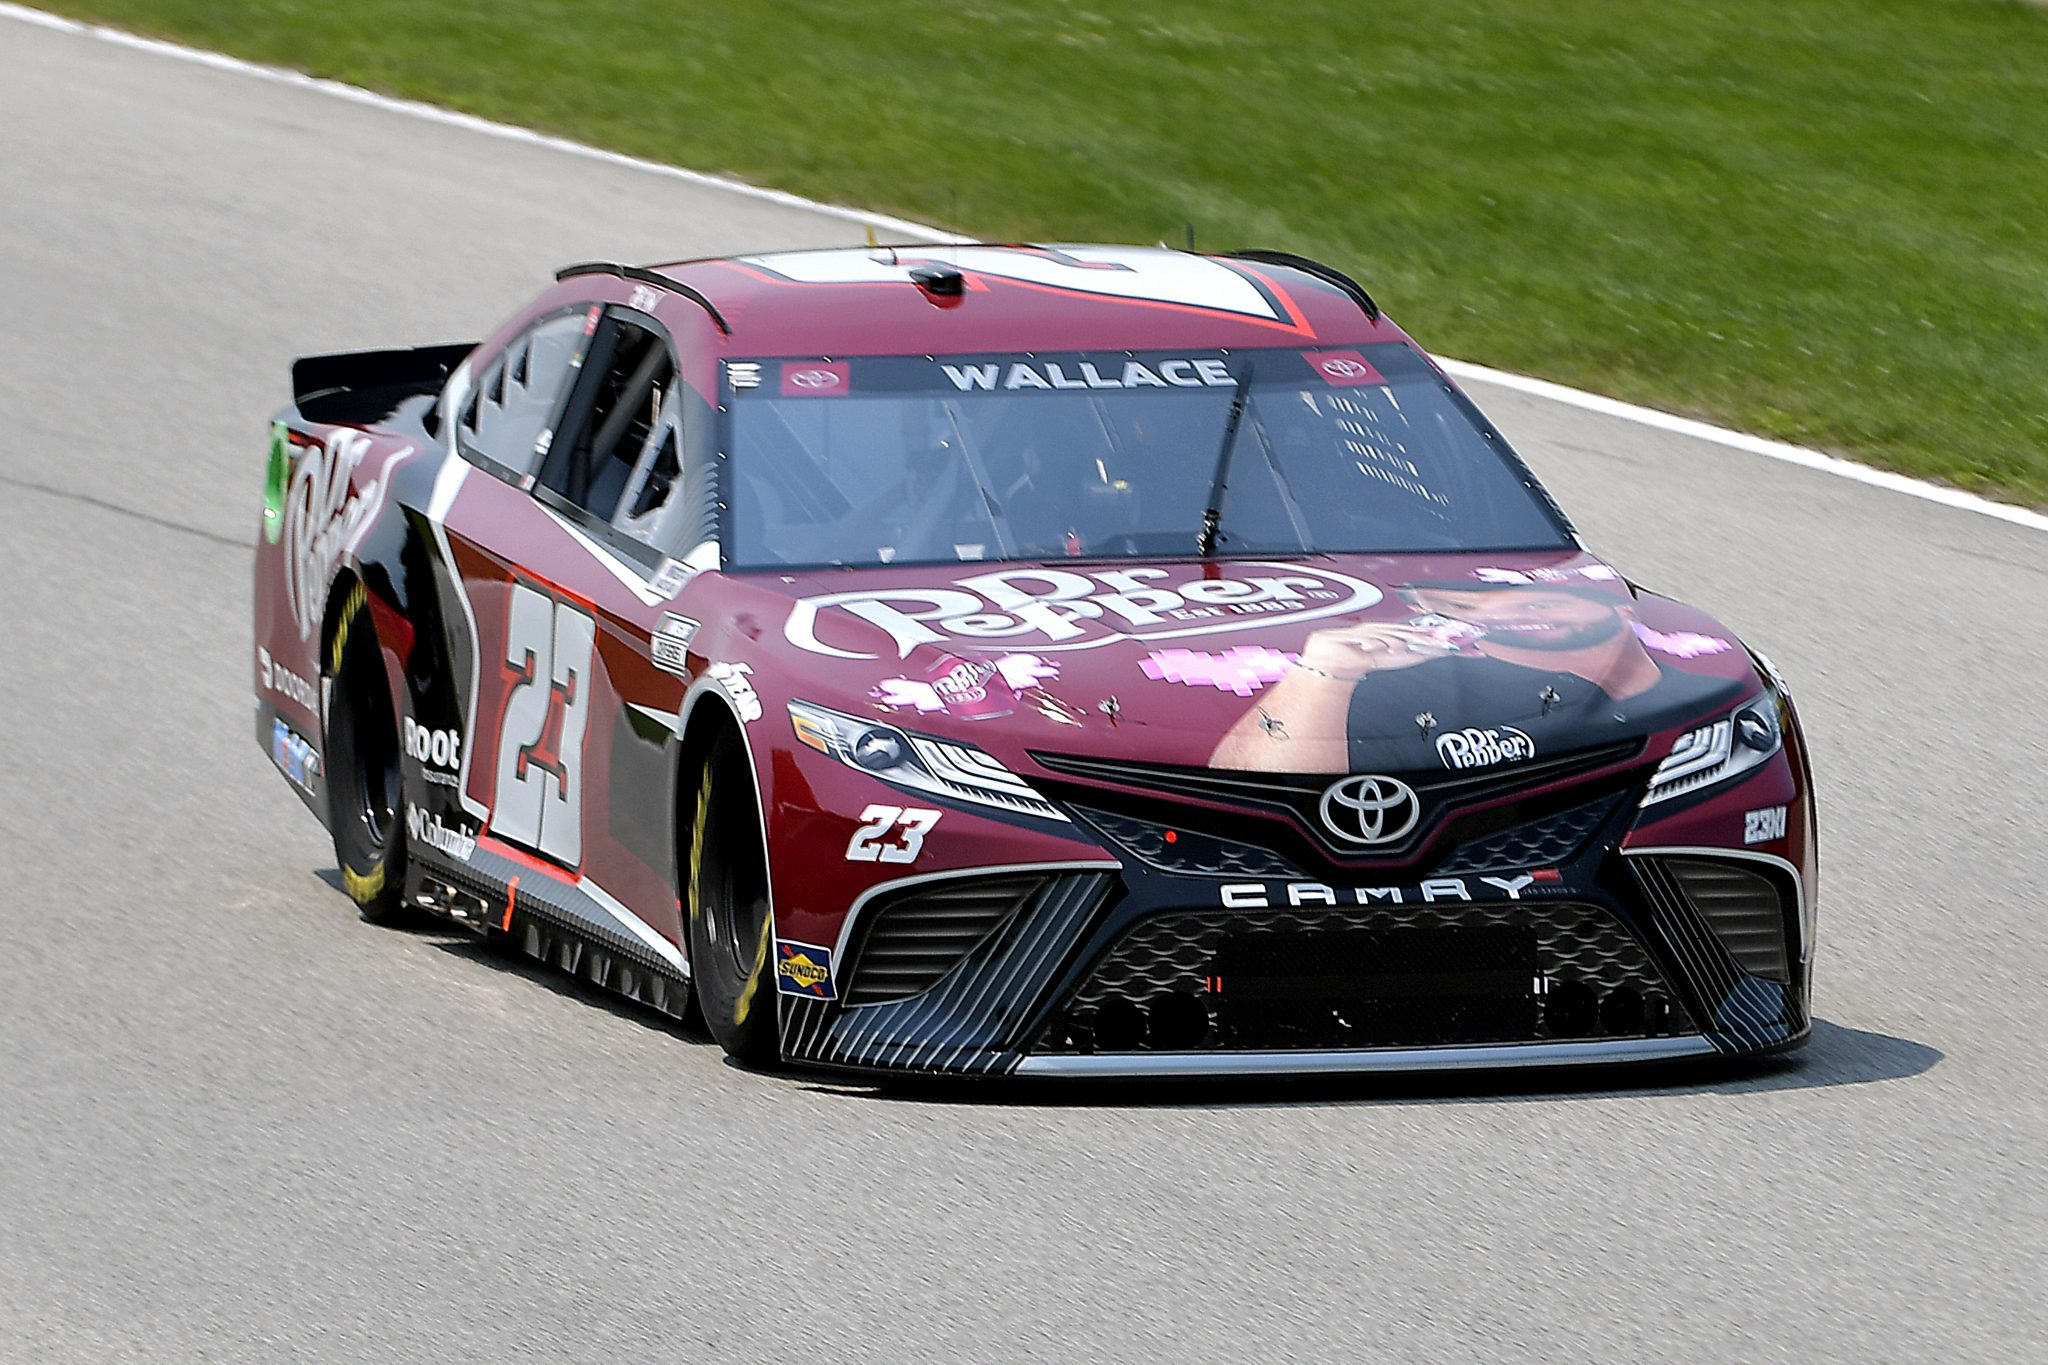 ELKHART LAKE, WISCONSIN - JULY 03: Bubba Wallace, driver of the #23 Dr. Pepper Toyota, drives during practice for the NASCAR Cup Series Jockey Made in America 250 Presented by Kwik Trip at Road America on July 03, 2021 in Elkhart Lake, Wisconsin. (Photo by Logan Riely/23XI Racing via Getty Images)